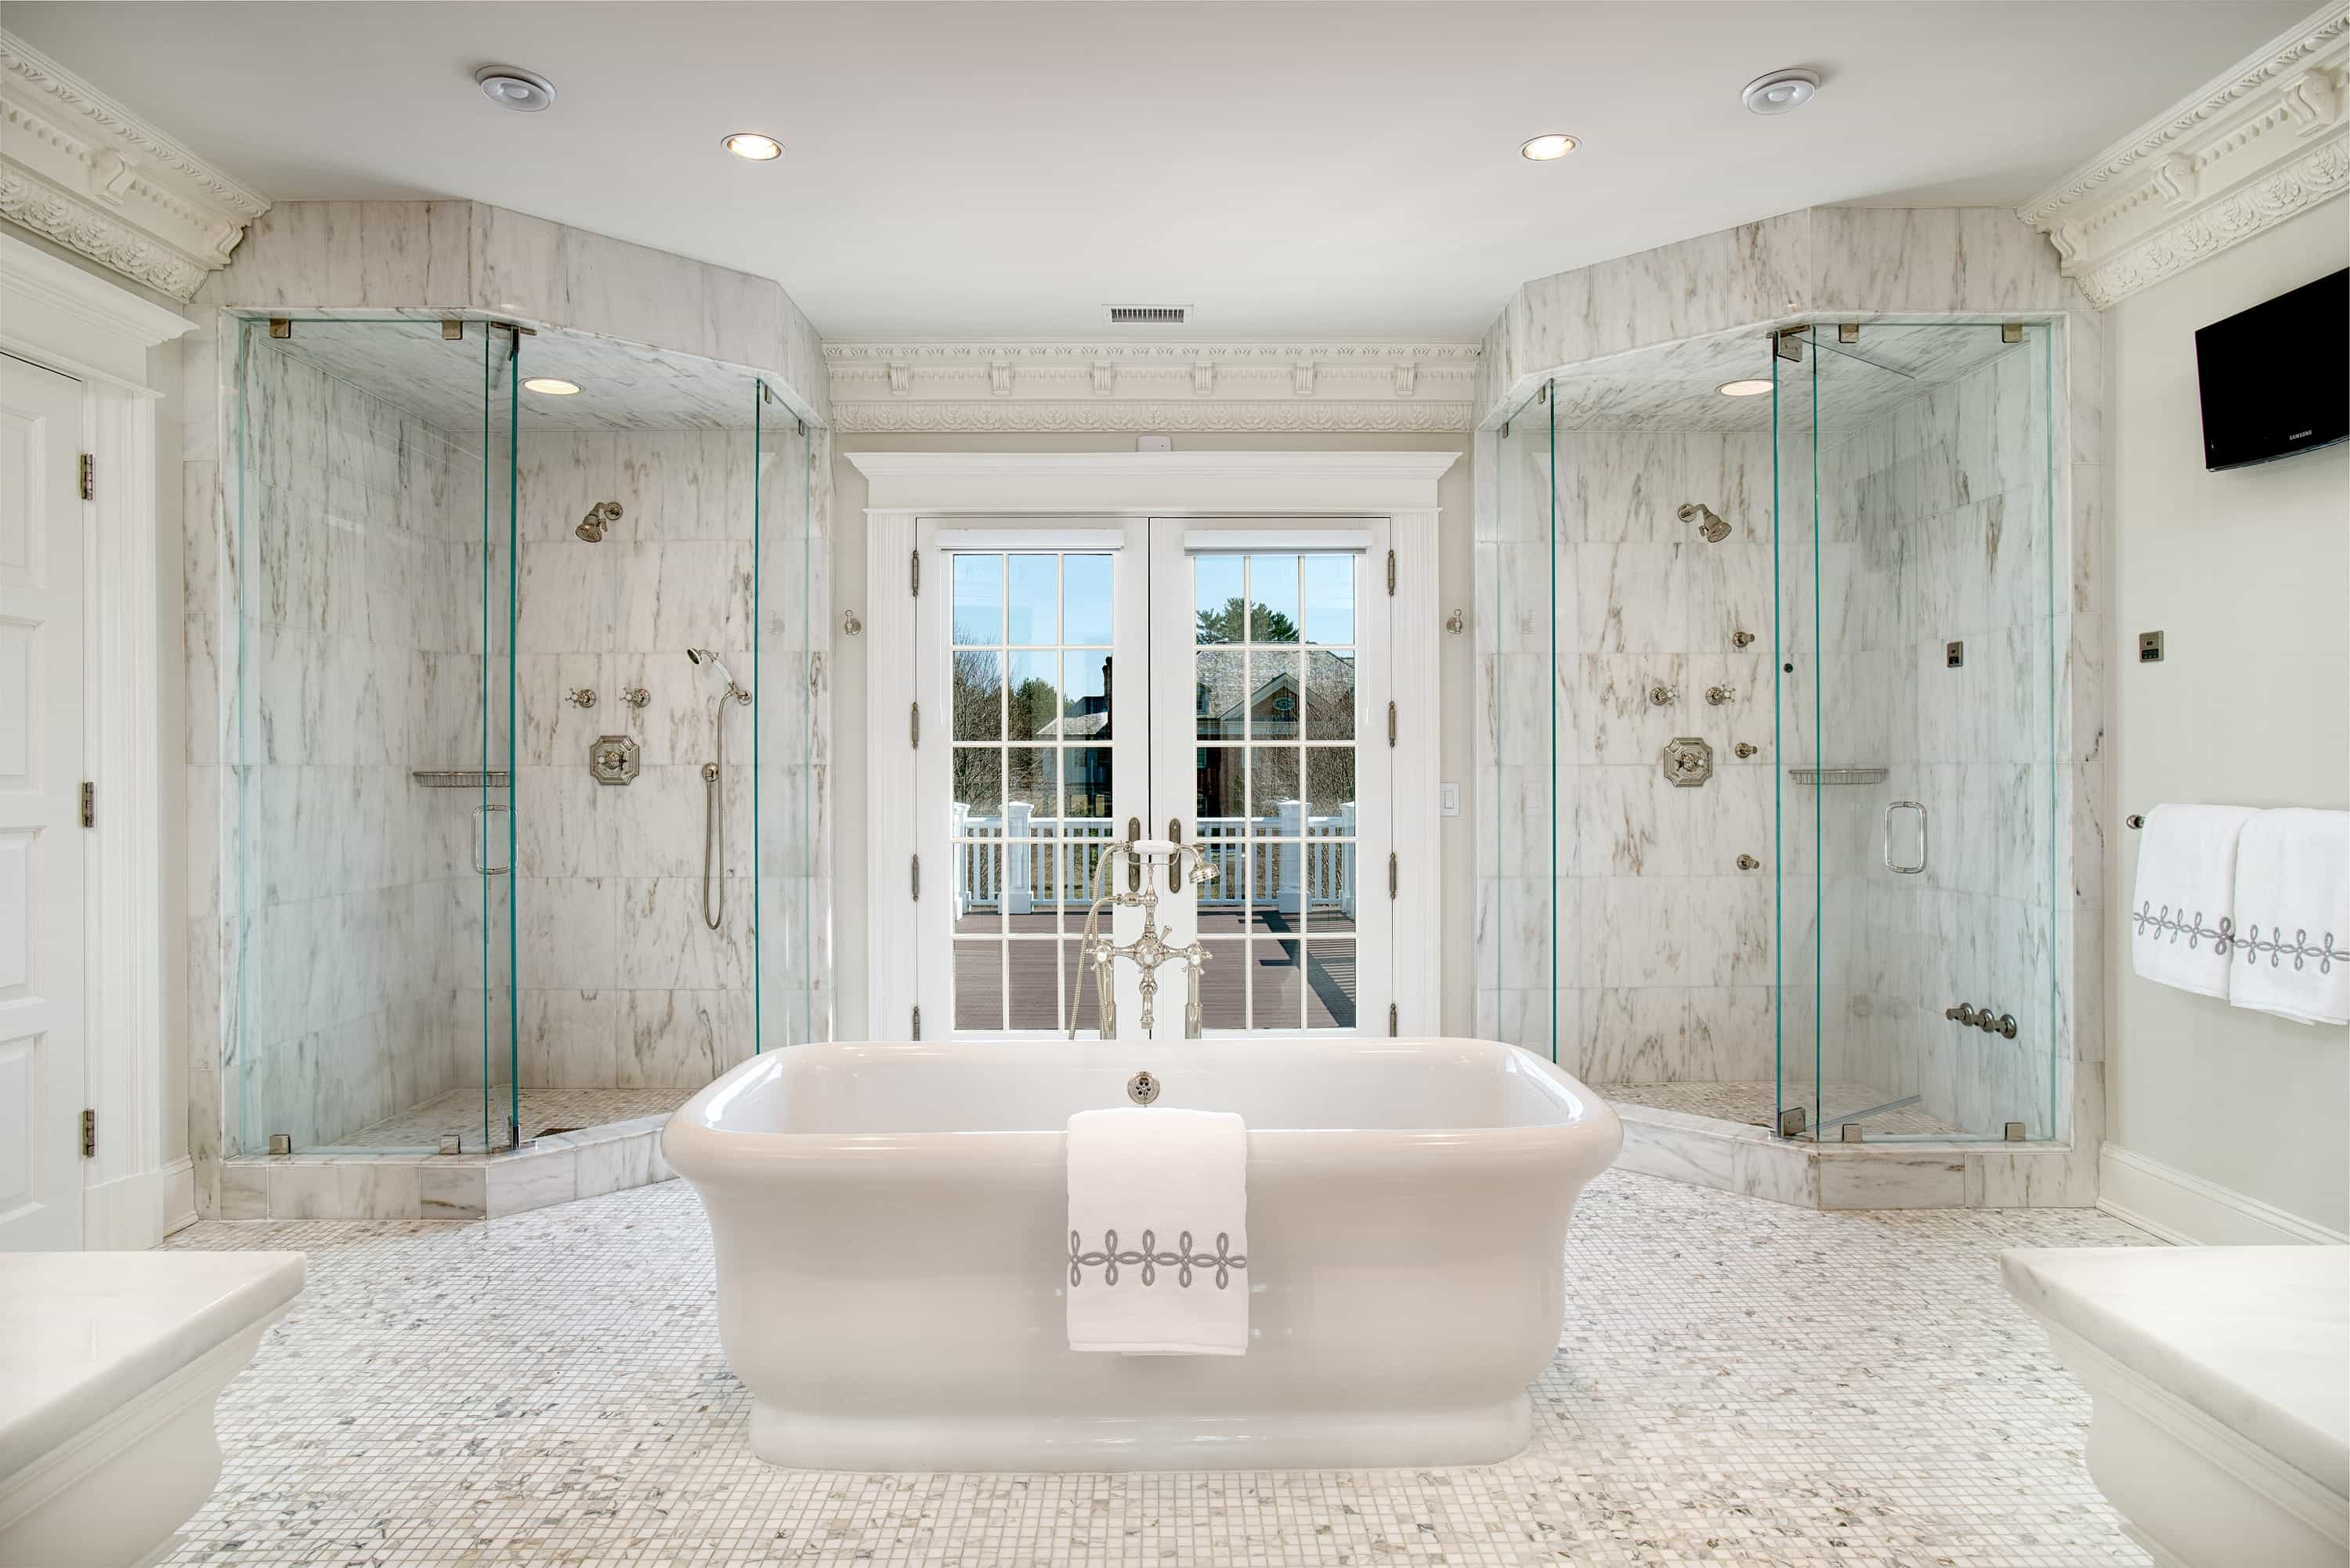 Deluxe French Bathroom Interior Combo With Double Shower Room With Marble Wall And Flooring (Image 6 of 16)